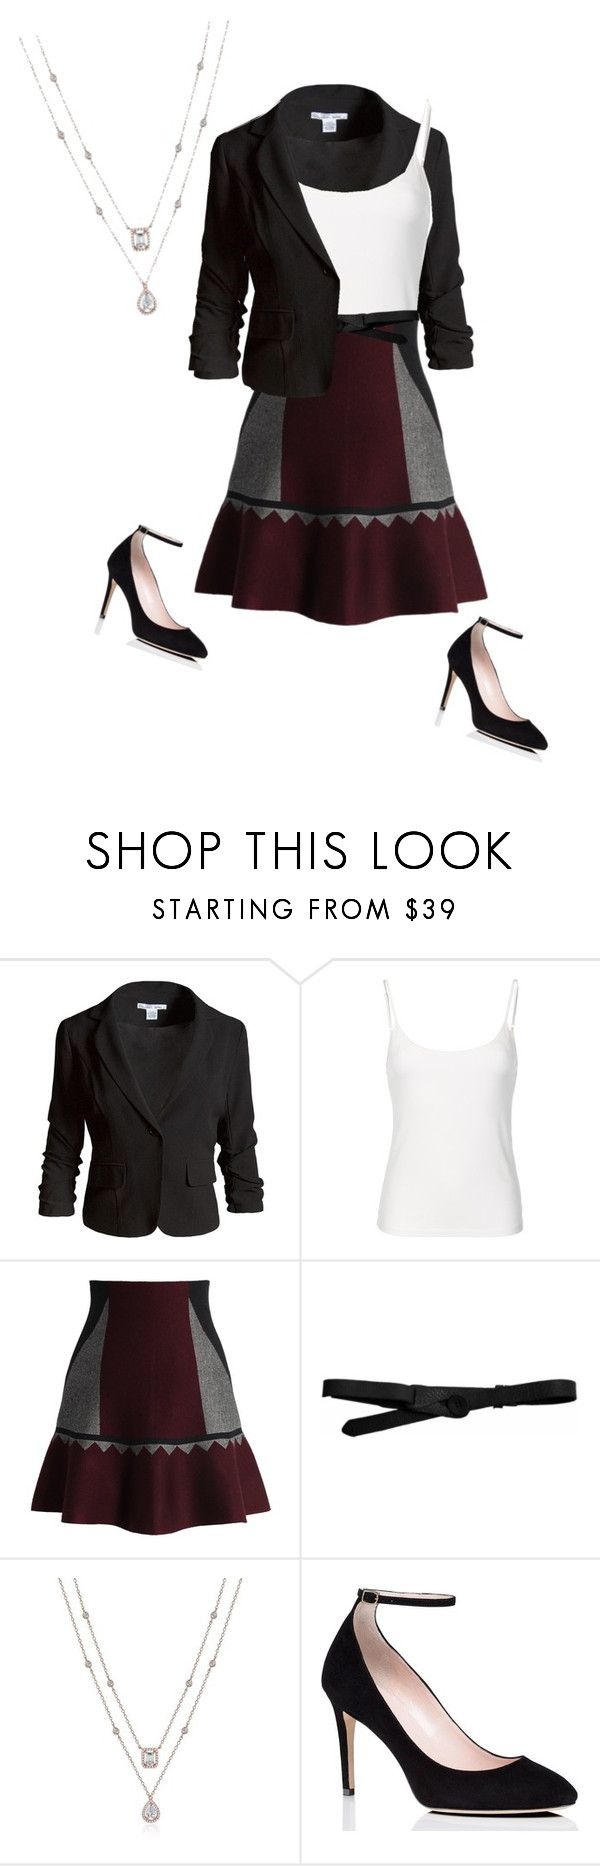 """""""Rebecca Bunch 1.3 {Crazy Ex-Girlfriend}"""" by sarah-natalie ❤ liked on Polyvore featuring Sans Souci, Chicwish, Lowie, Kate Spade, cw, crazyexgirlfriend and RebeccaBunch"""